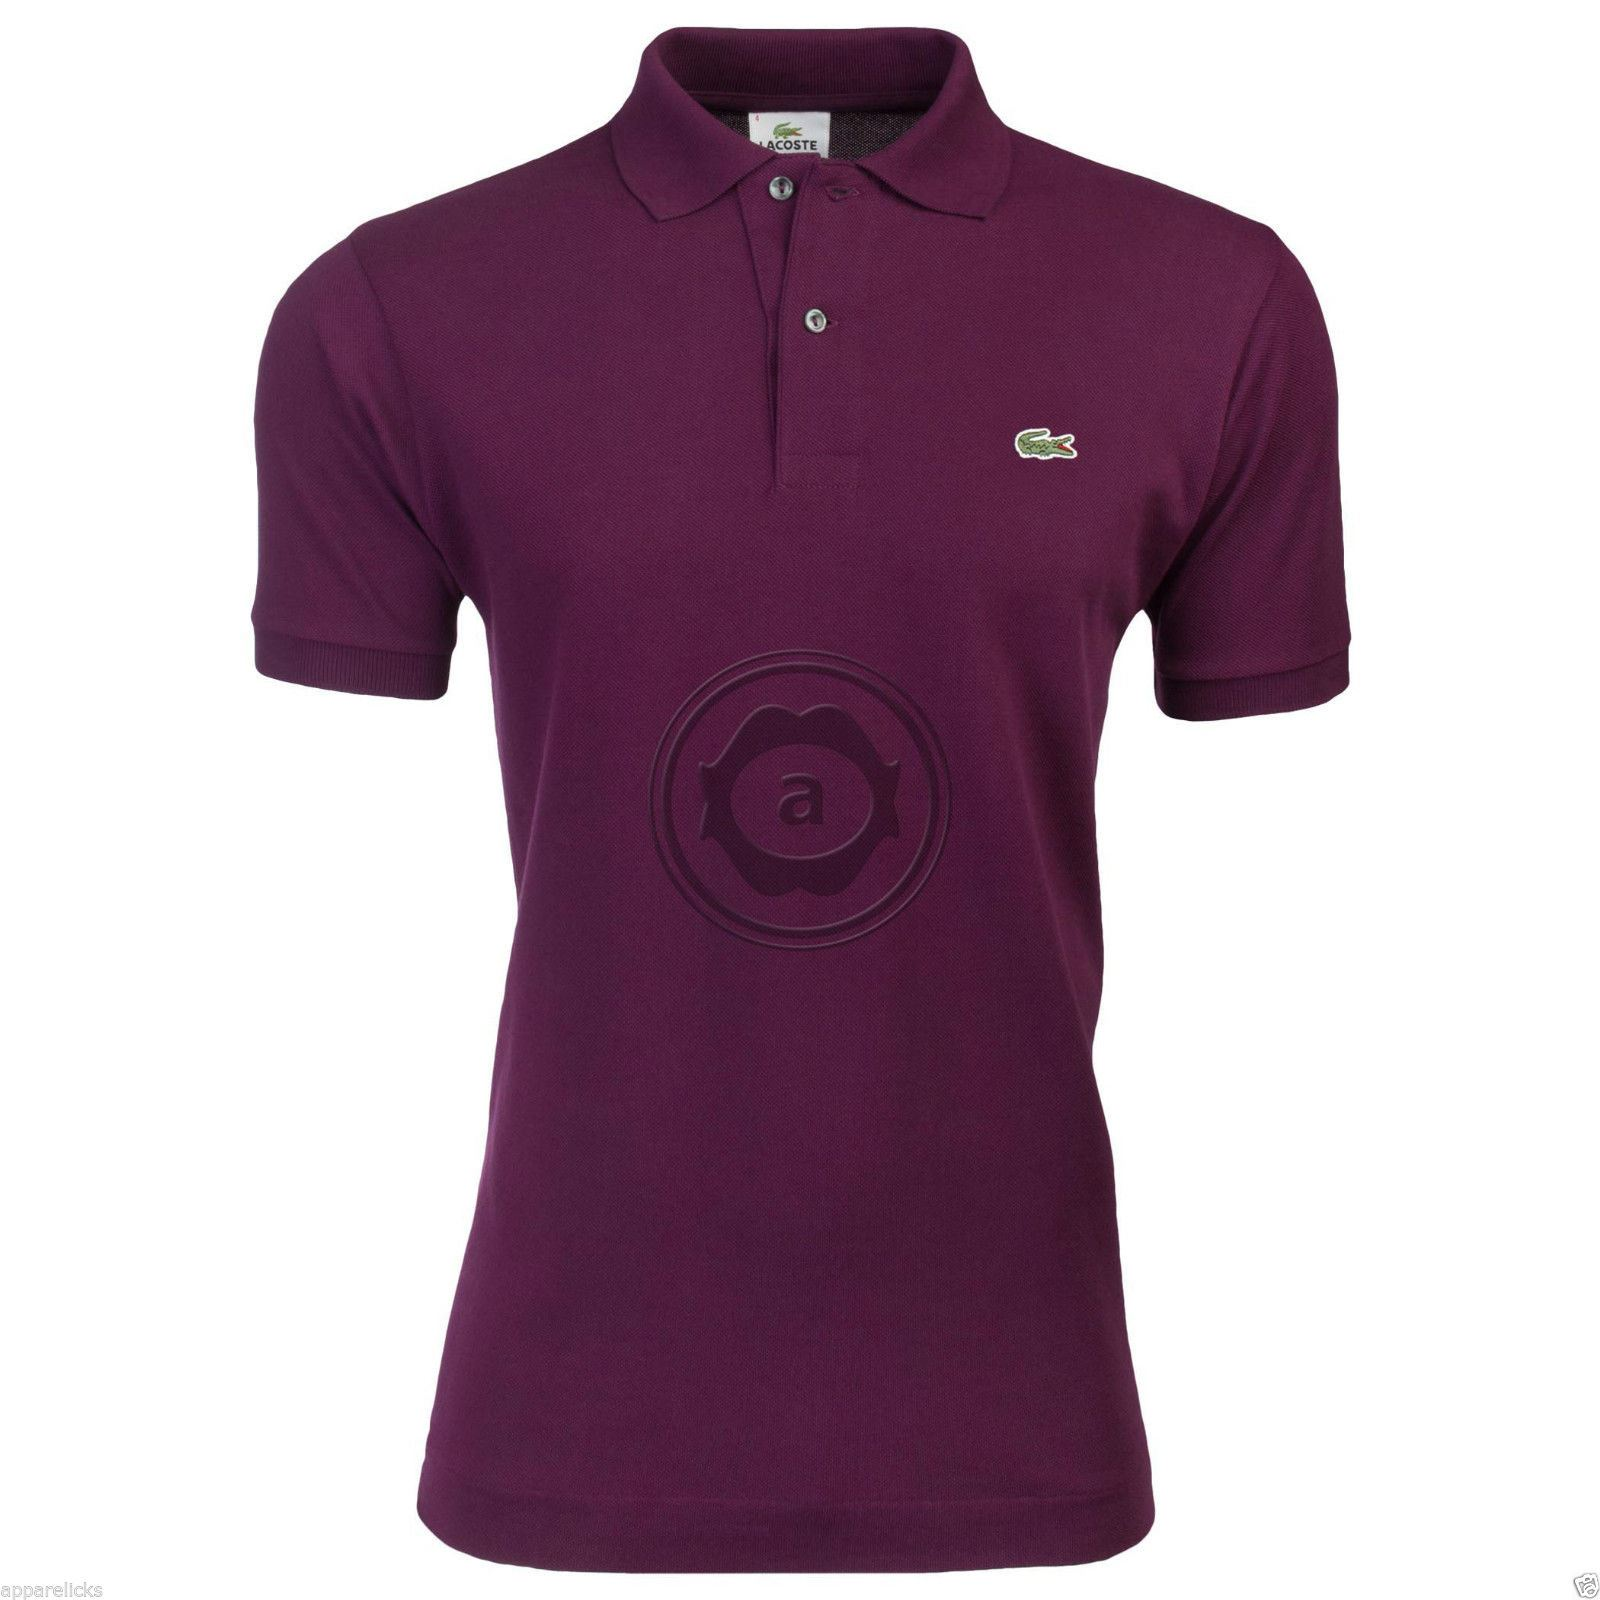 lacoste men 39 s l1212 polo shirt cotton classic fit all colours size 3 4 5 6 7 ebay. Black Bedroom Furniture Sets. Home Design Ideas